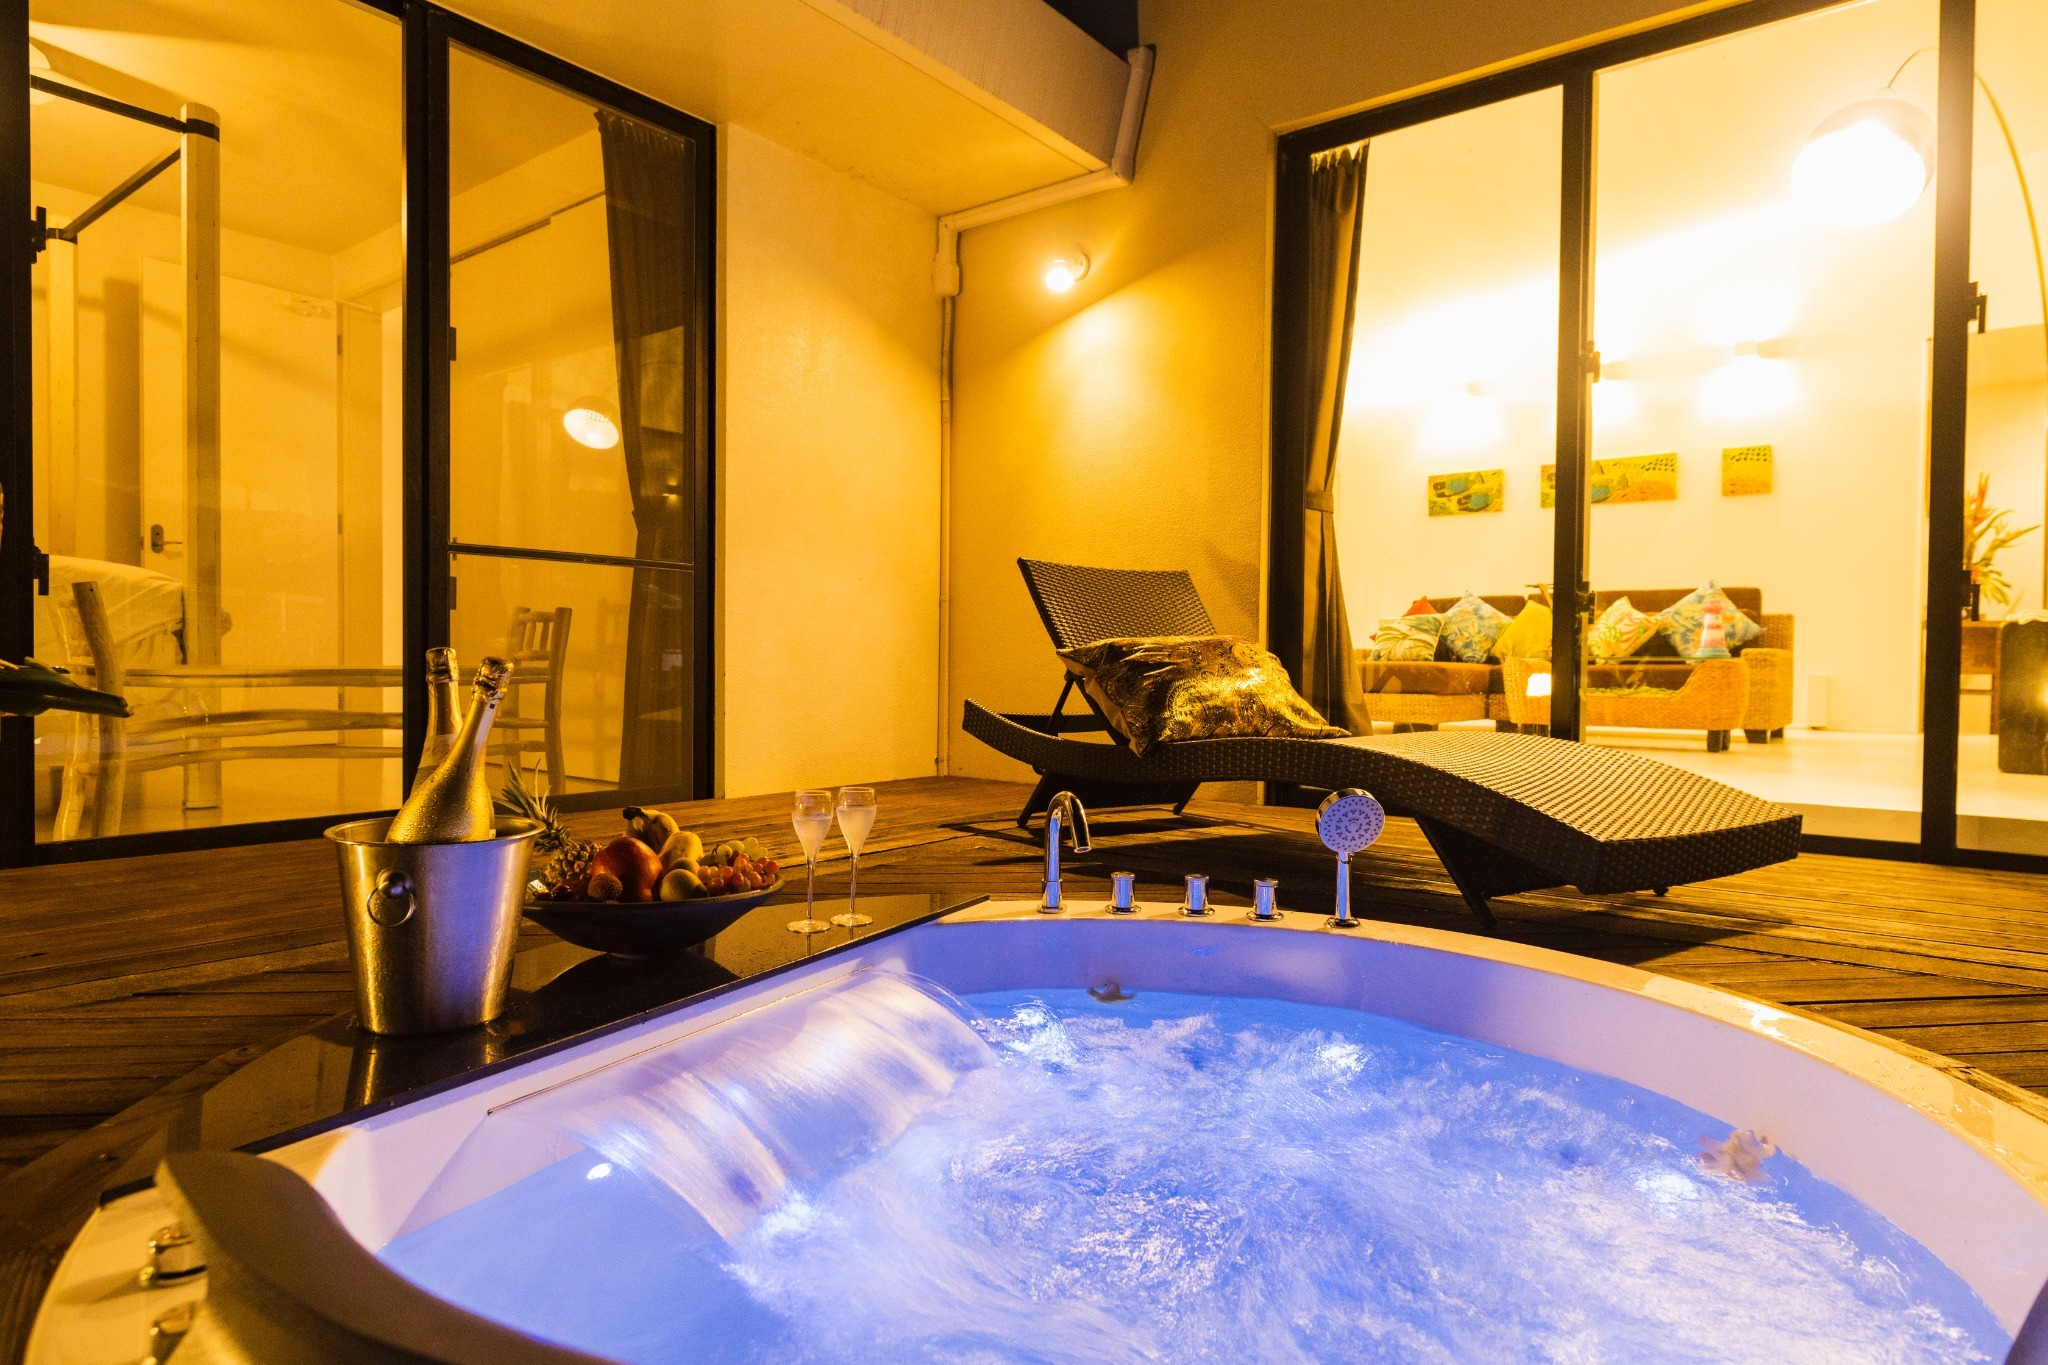 Feeling Okinawa and heal the tiredness of your trip with a jacuzzi. 沖縄を感じながら、ライトアップされるジャグジーで旅の疲れを癒します。